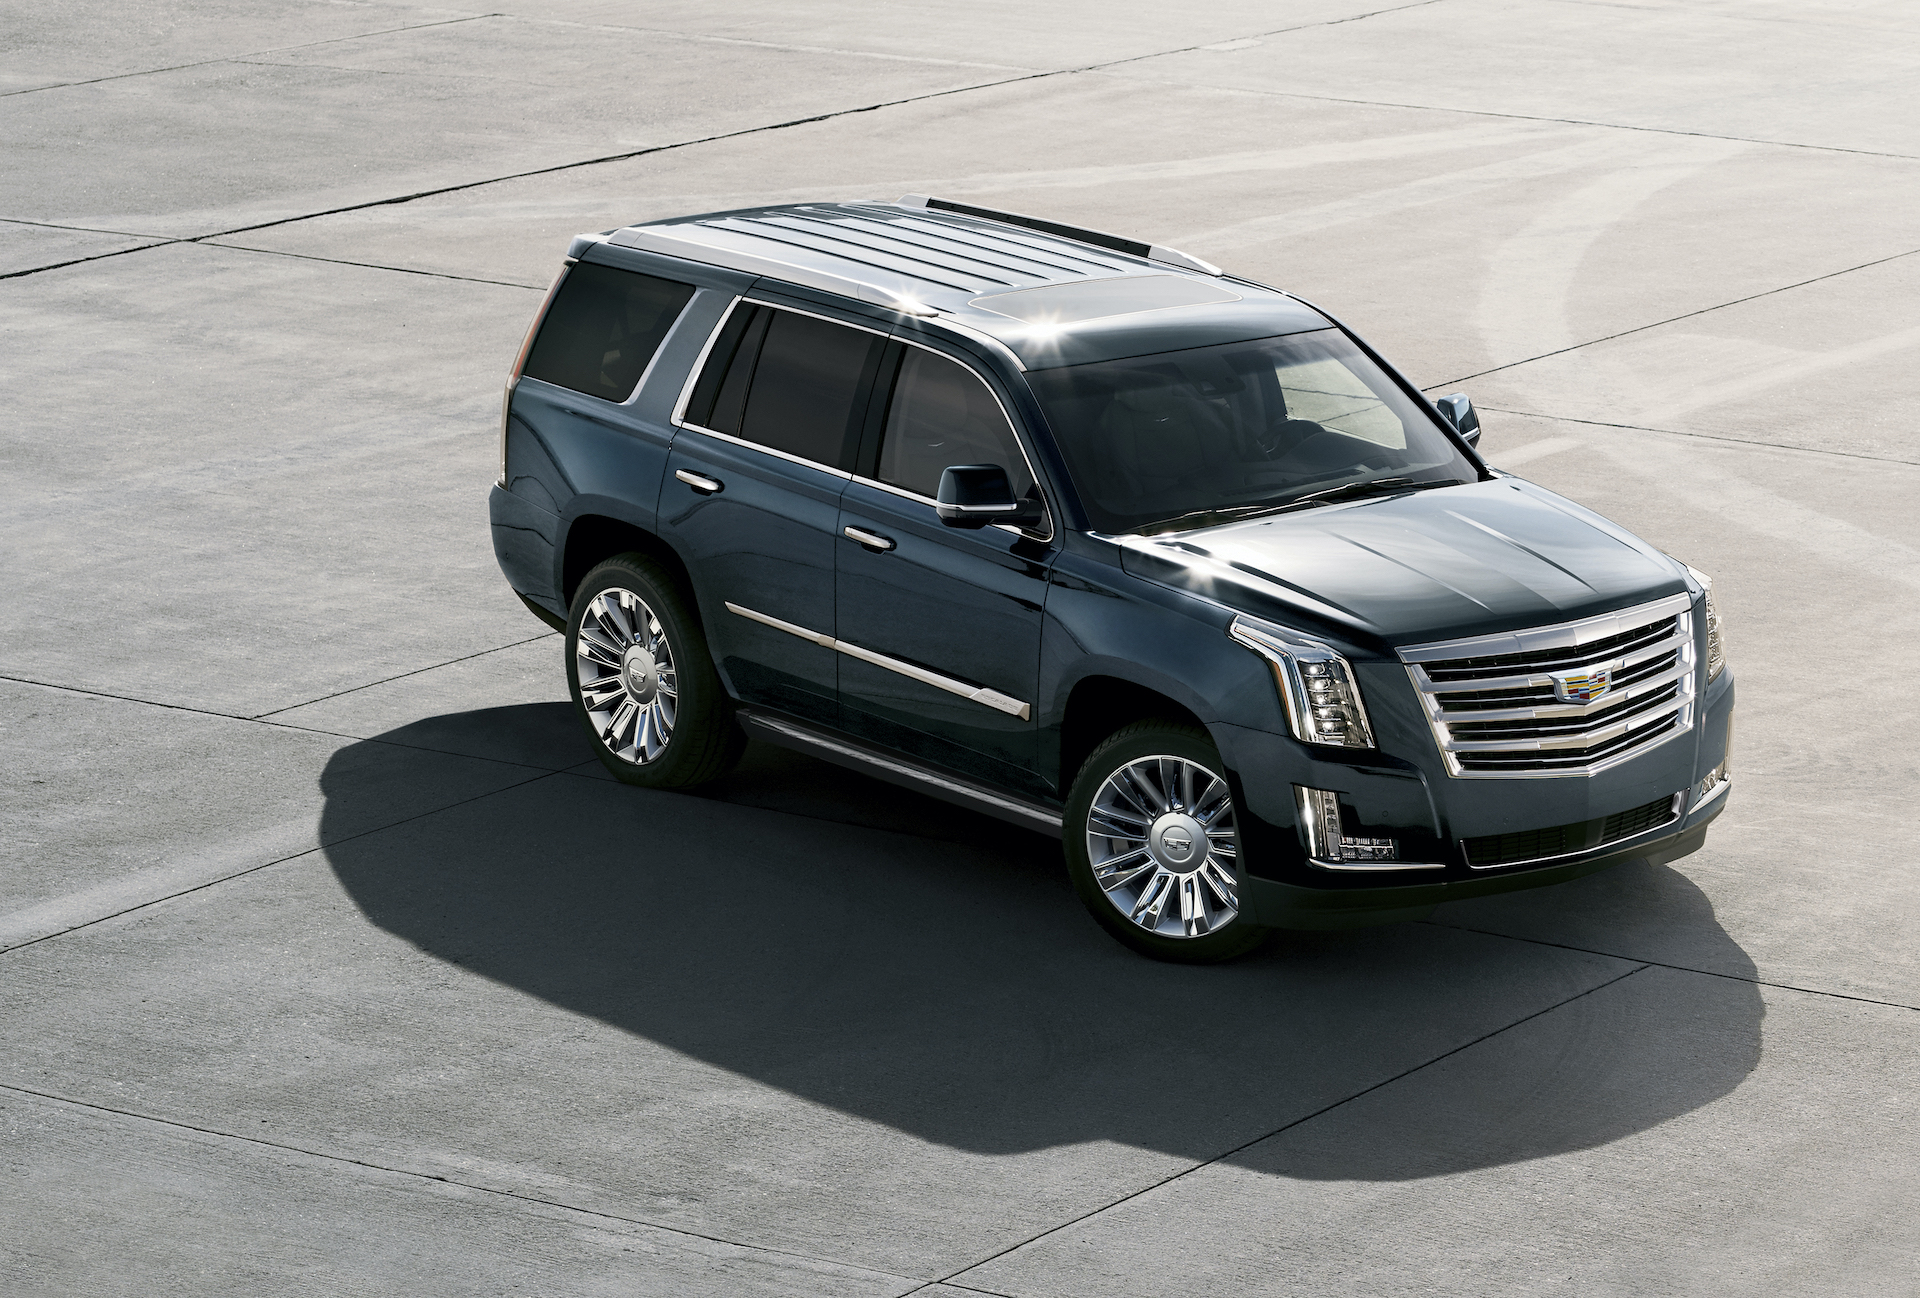 14 Best Review 2020 Cadillac Escalade Images Engine by 2020 Cadillac Escalade Images